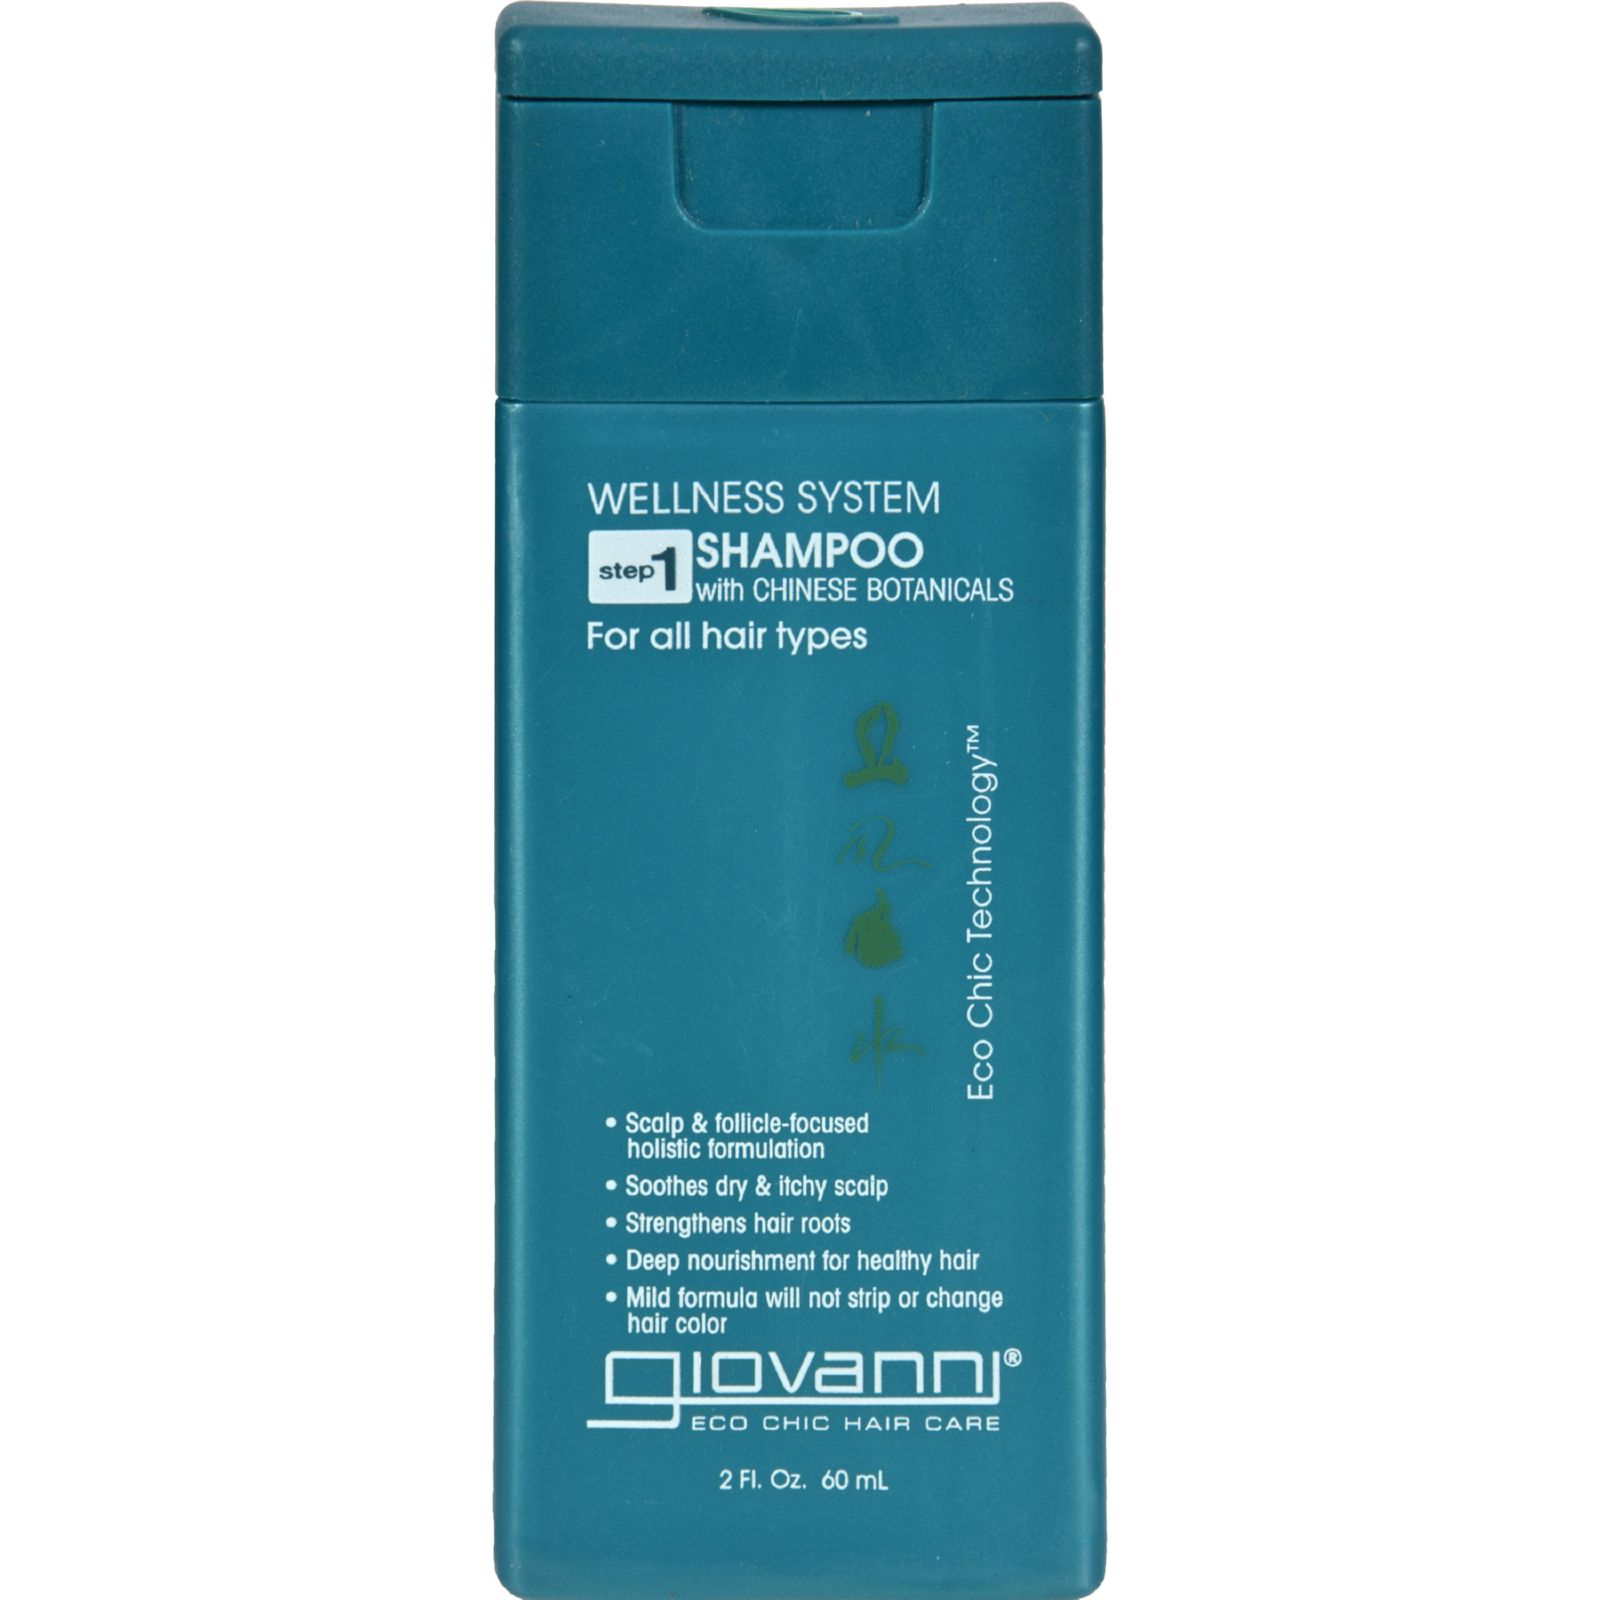 Giovanni Hair Care Products Shampoo - Wellness System - Travel Size - 2 oz